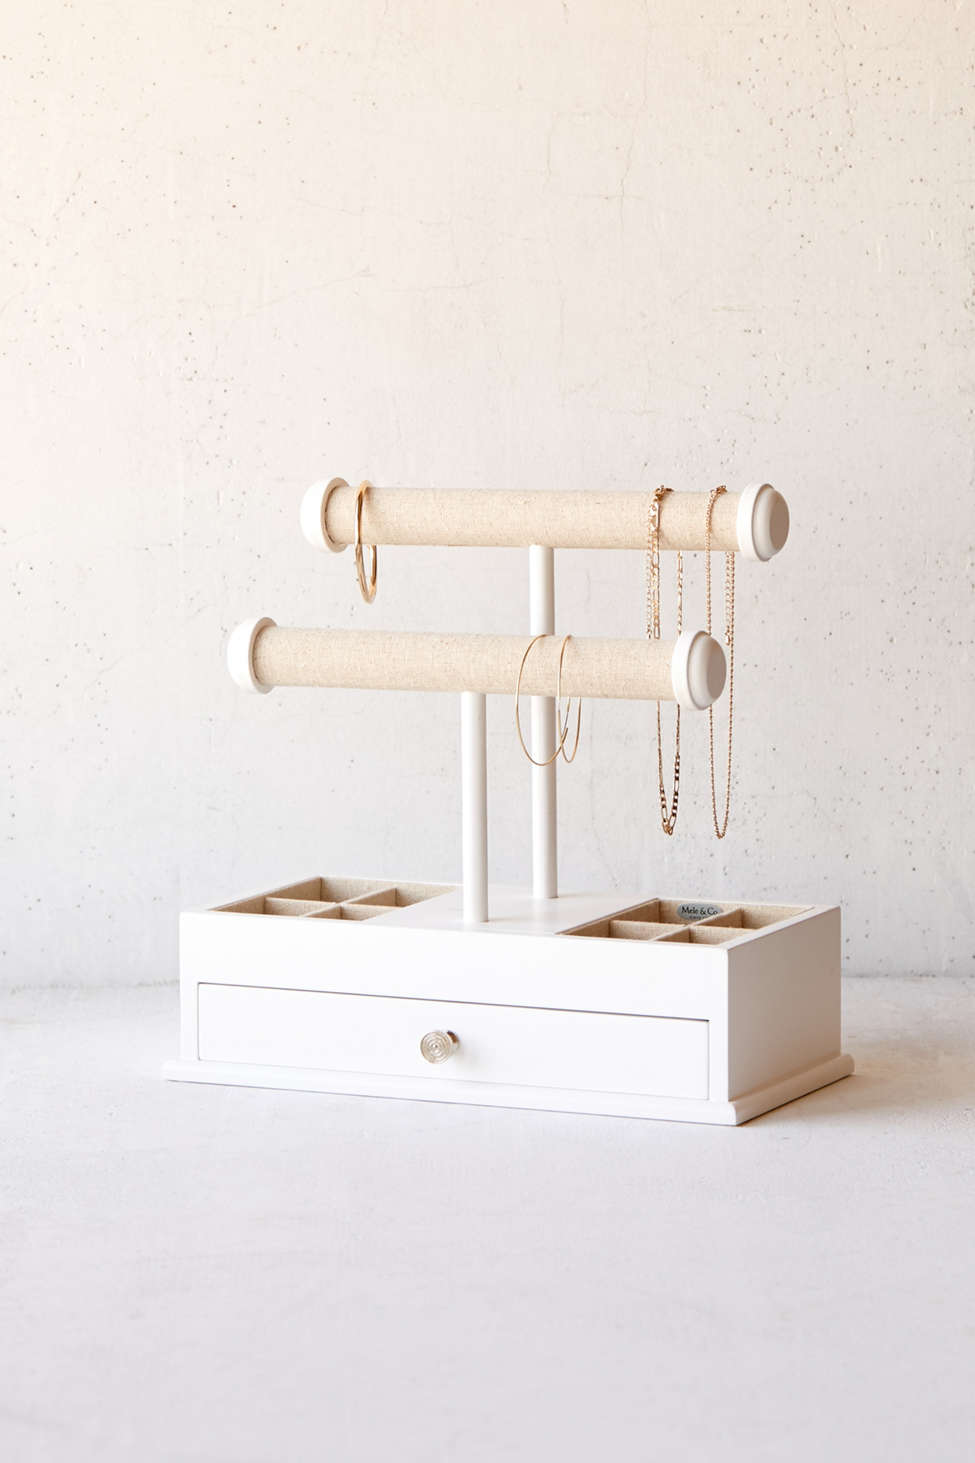 Slide View: 1: Mele & Co. Ivy Jewelry Box + Stand